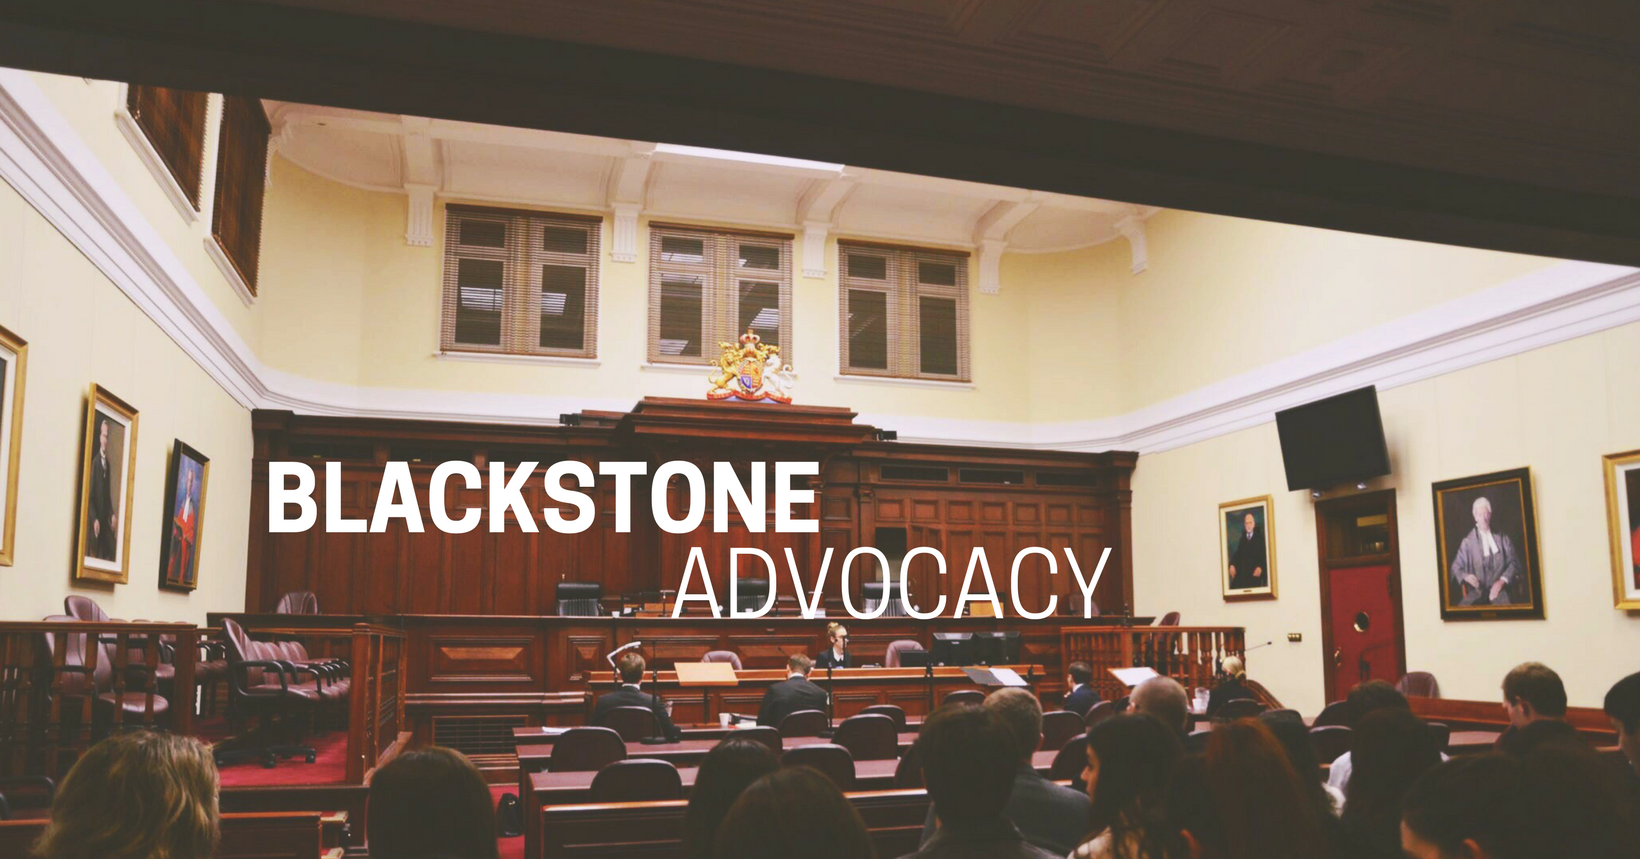 Blackstone Advocacy — The Blackstone Society